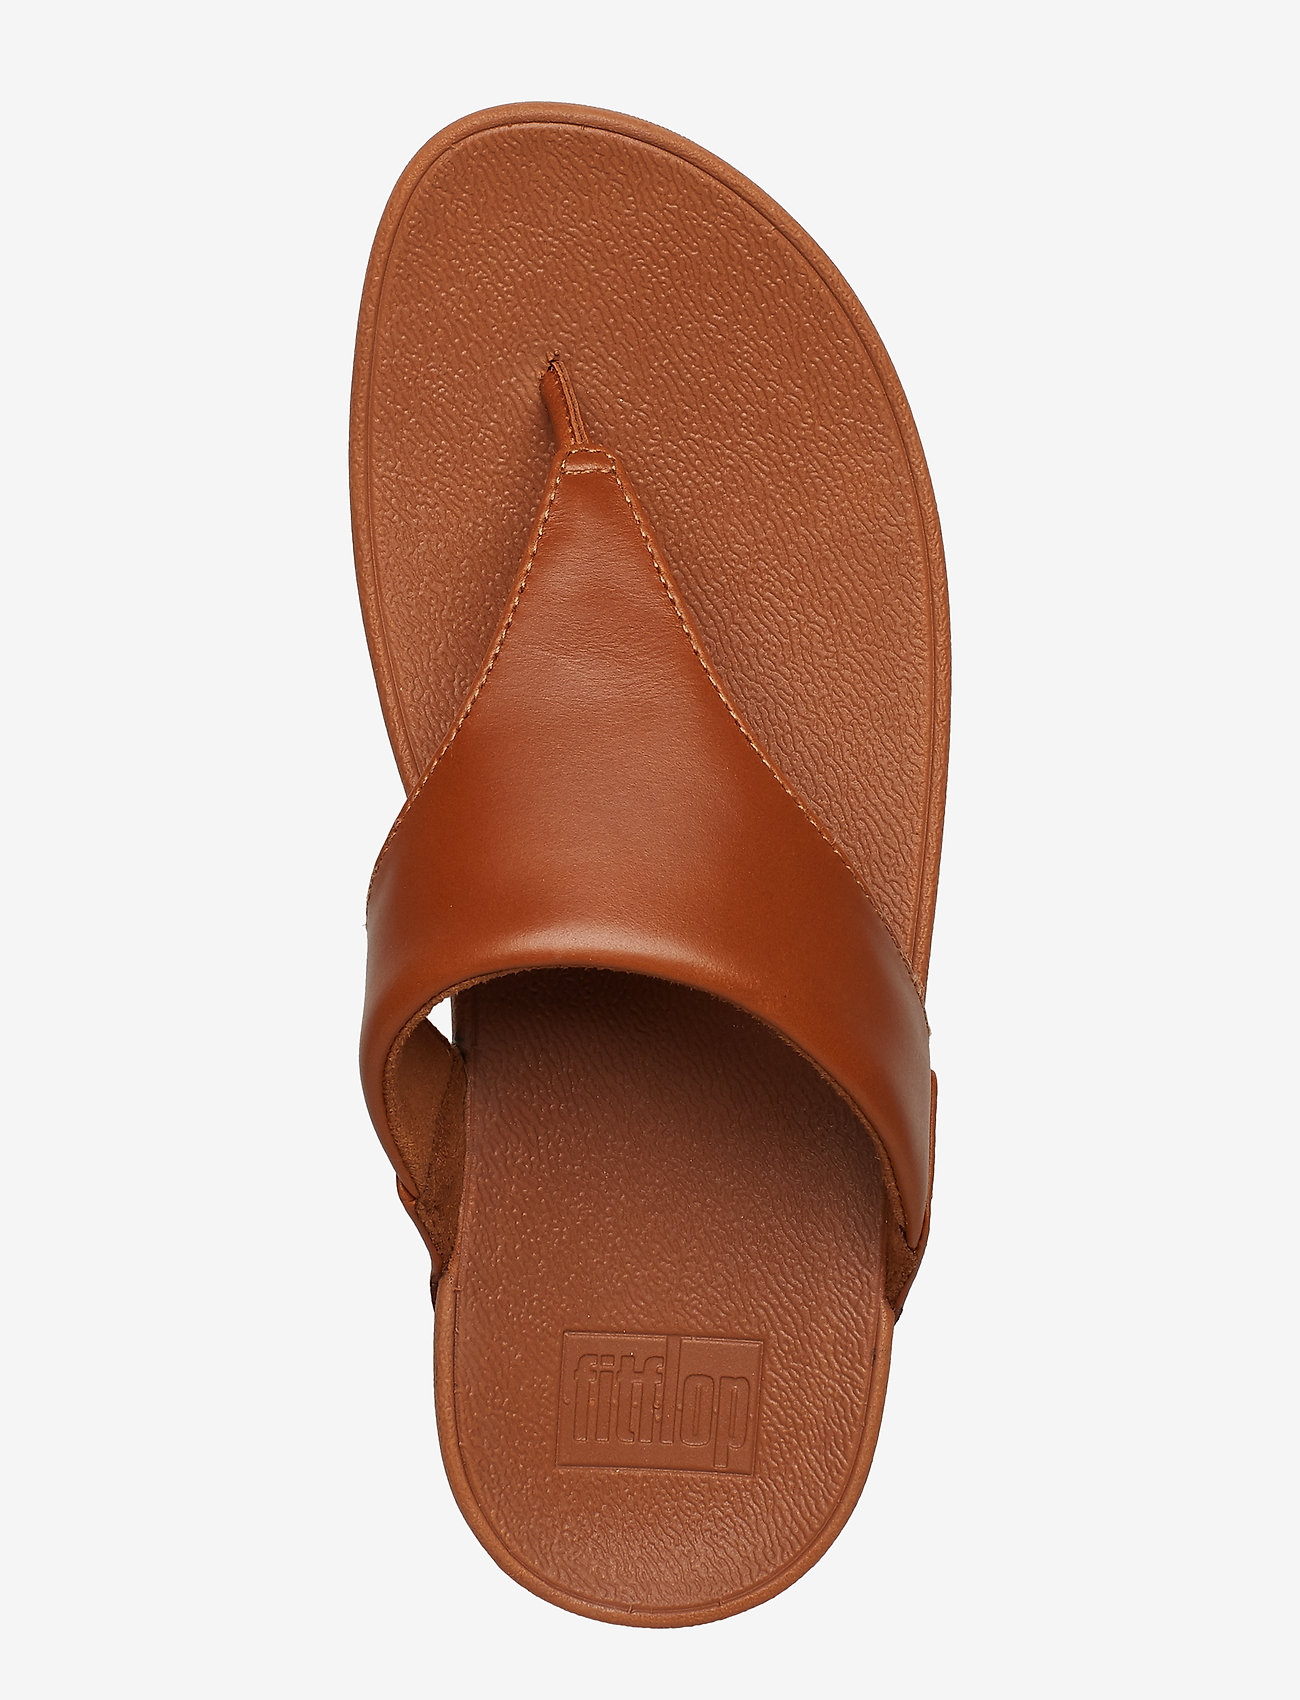 Lulu Leather Toepost (Light Tan) - FitFlop